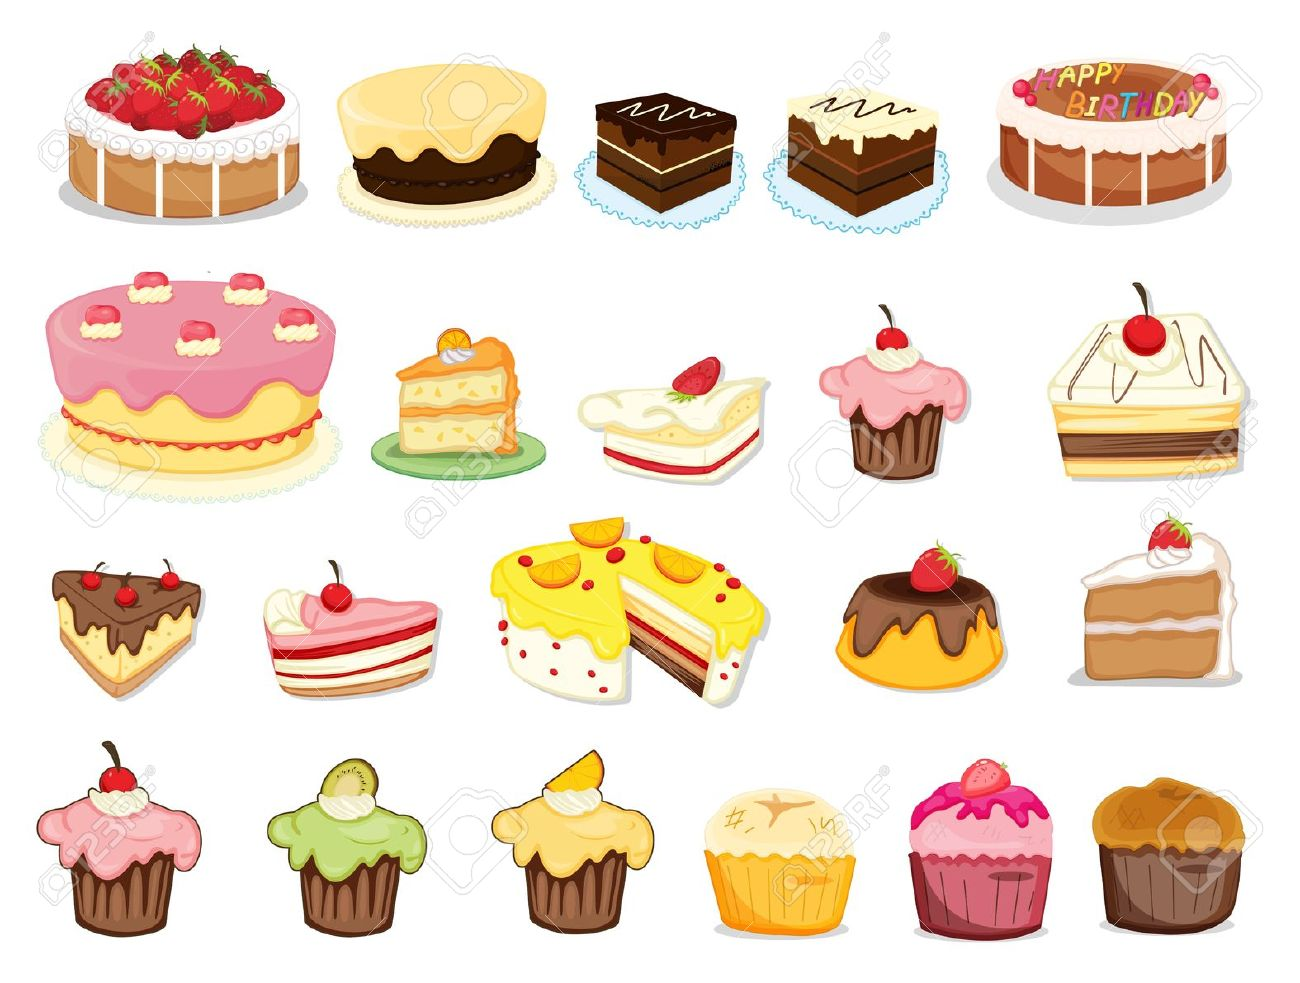 Free dessert clipart images clipart royalty free library Best Dessert Clipart #12437 - Clipartion.com clipart royalty free library